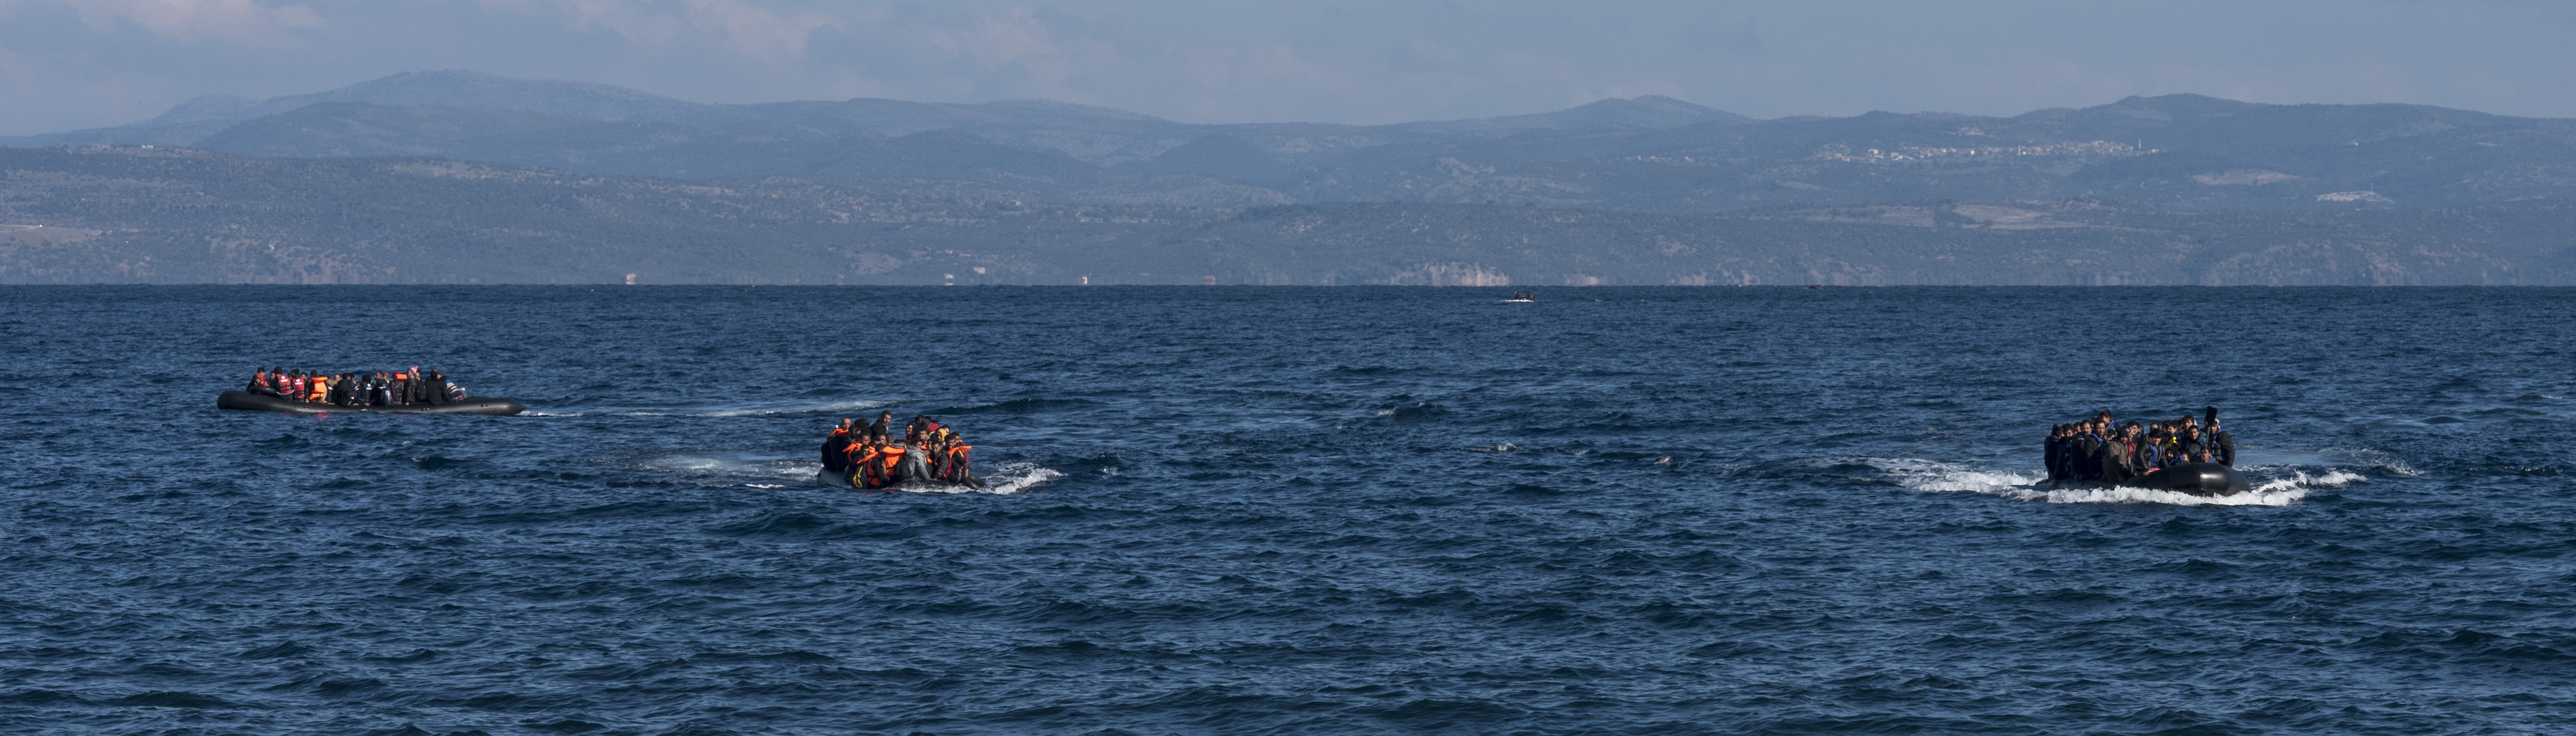 Asylum seeker boats crossing the Aegean Sea, headed for Lesvos. Creative Commons.